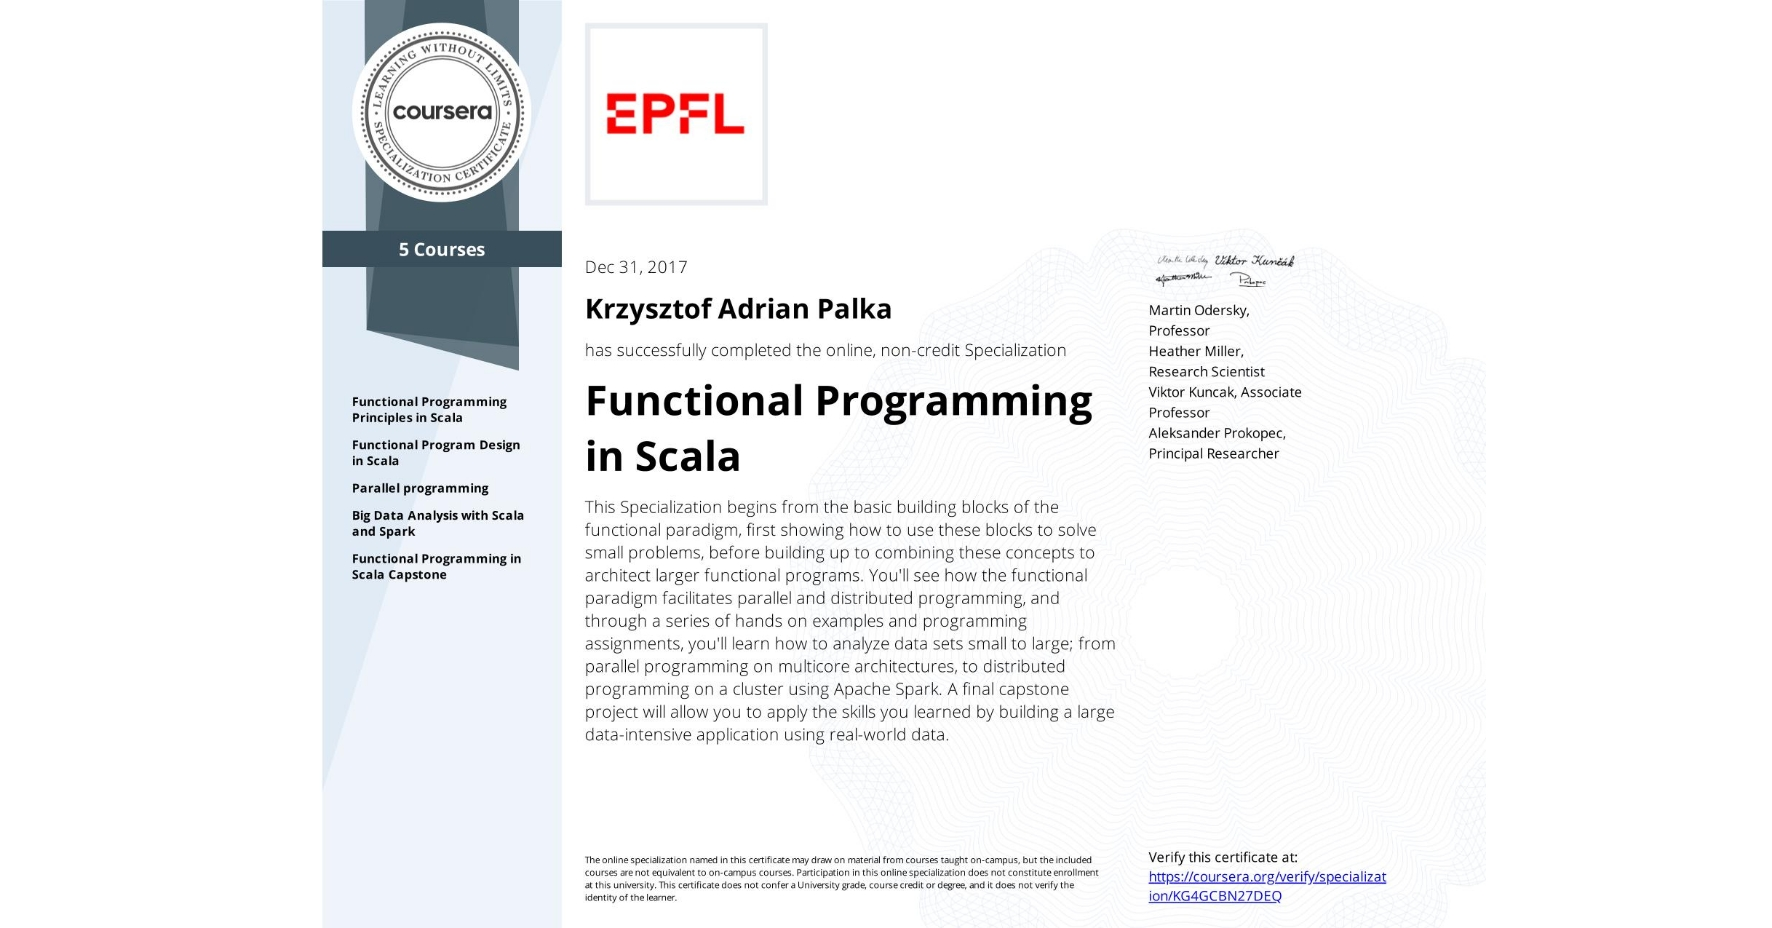 View certificate for Krzysztof Adrian Palka, Functional Programming in Scala, offered through Coursera. This Specialization begins from the basic building blocks of the functional paradigm, first showing how to use these blocks to solve small problems, before building up to combining these concepts to architect larger functional programs. You'll see how the functional paradigm facilitates parallel and distributed programming, and through a series of hands on examples and programming assignments, you'll learn how to analyze data sets small to large; from parallel programming on multicore architectures, to distributed programming on a cluster using Apache Spark. A final capstone project will allow you to apply the skills you learned by building a large data-intensive application using real-world data.